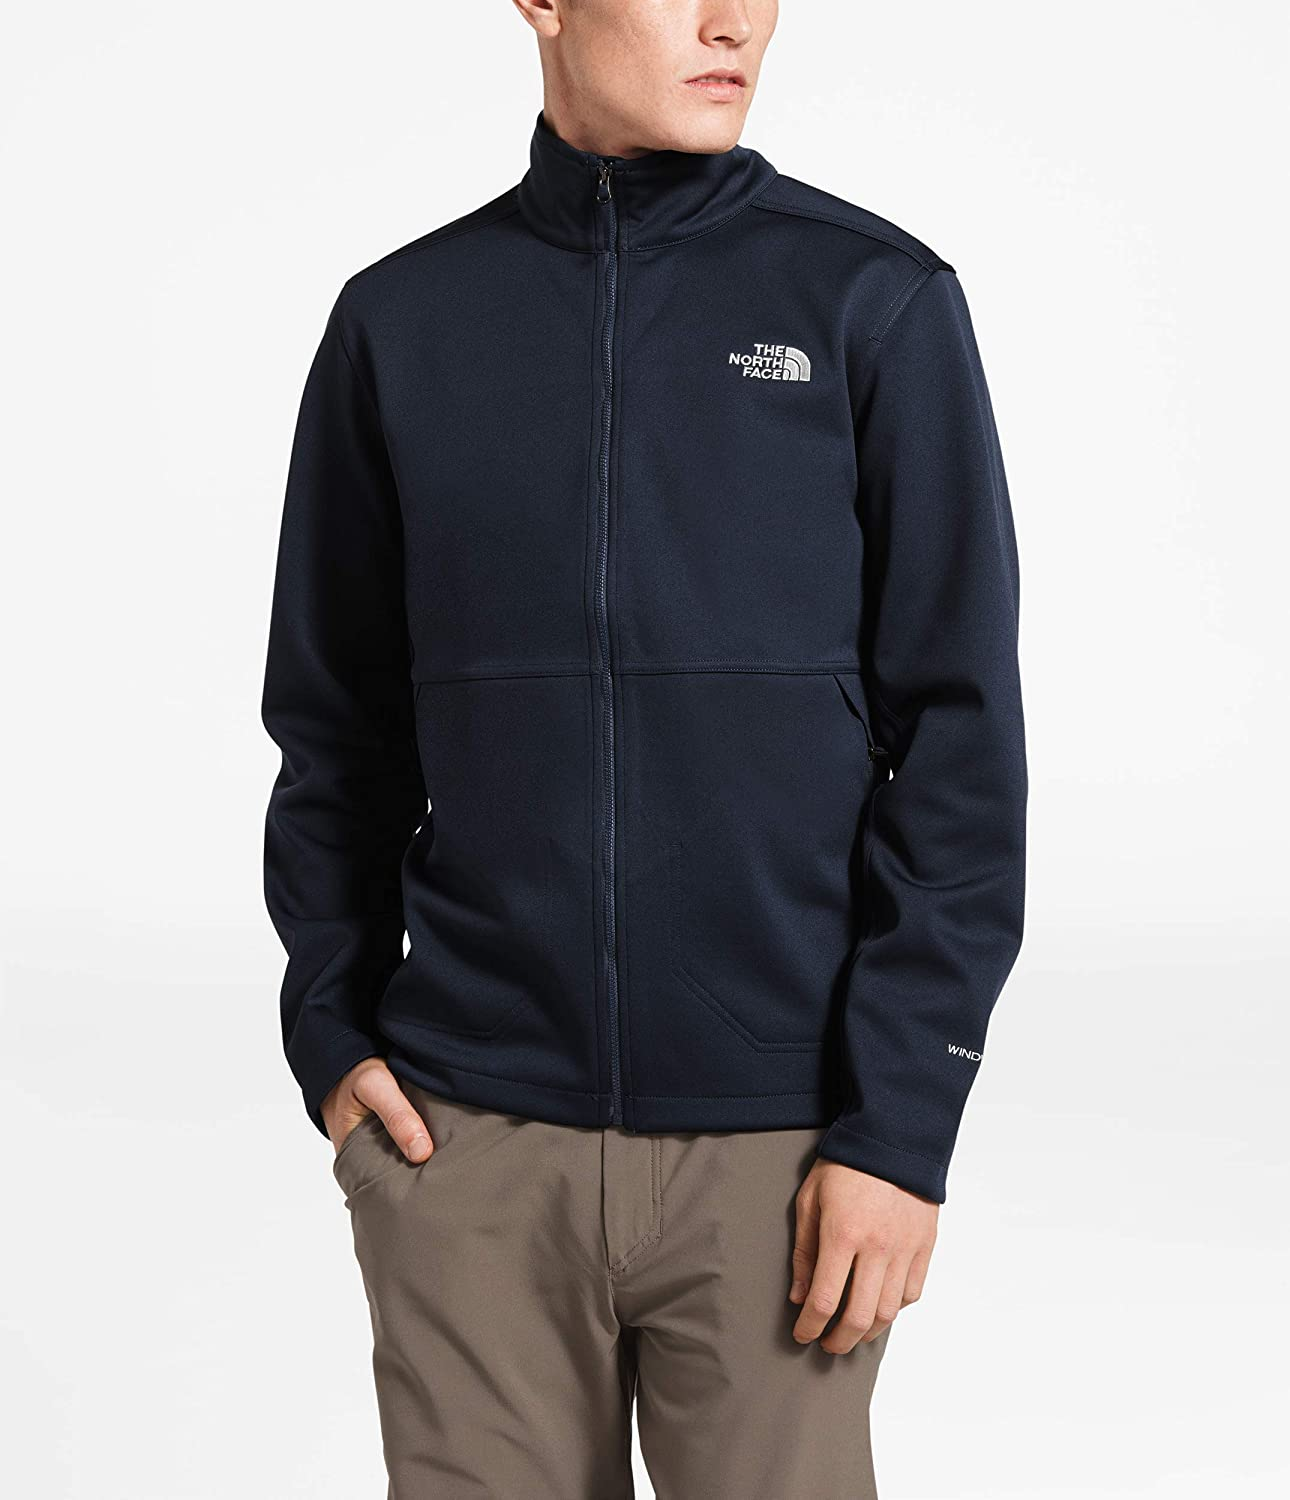 The North Face Mens Apex Canyonwall Jacket